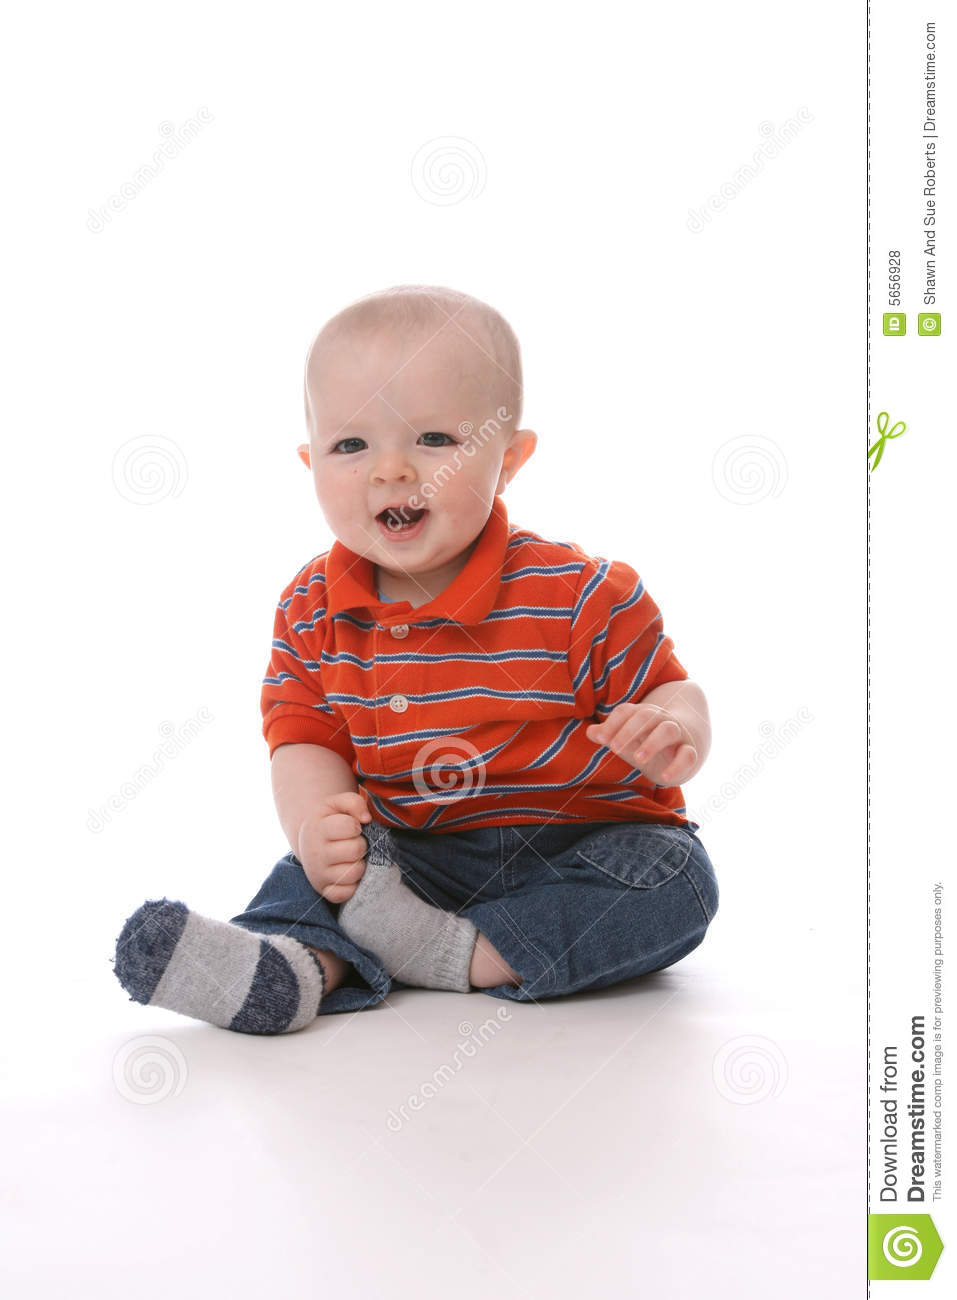 7925cd2fc Baby Boy Sitting And Pulling His Sock Off Stock Photo - Image of ...